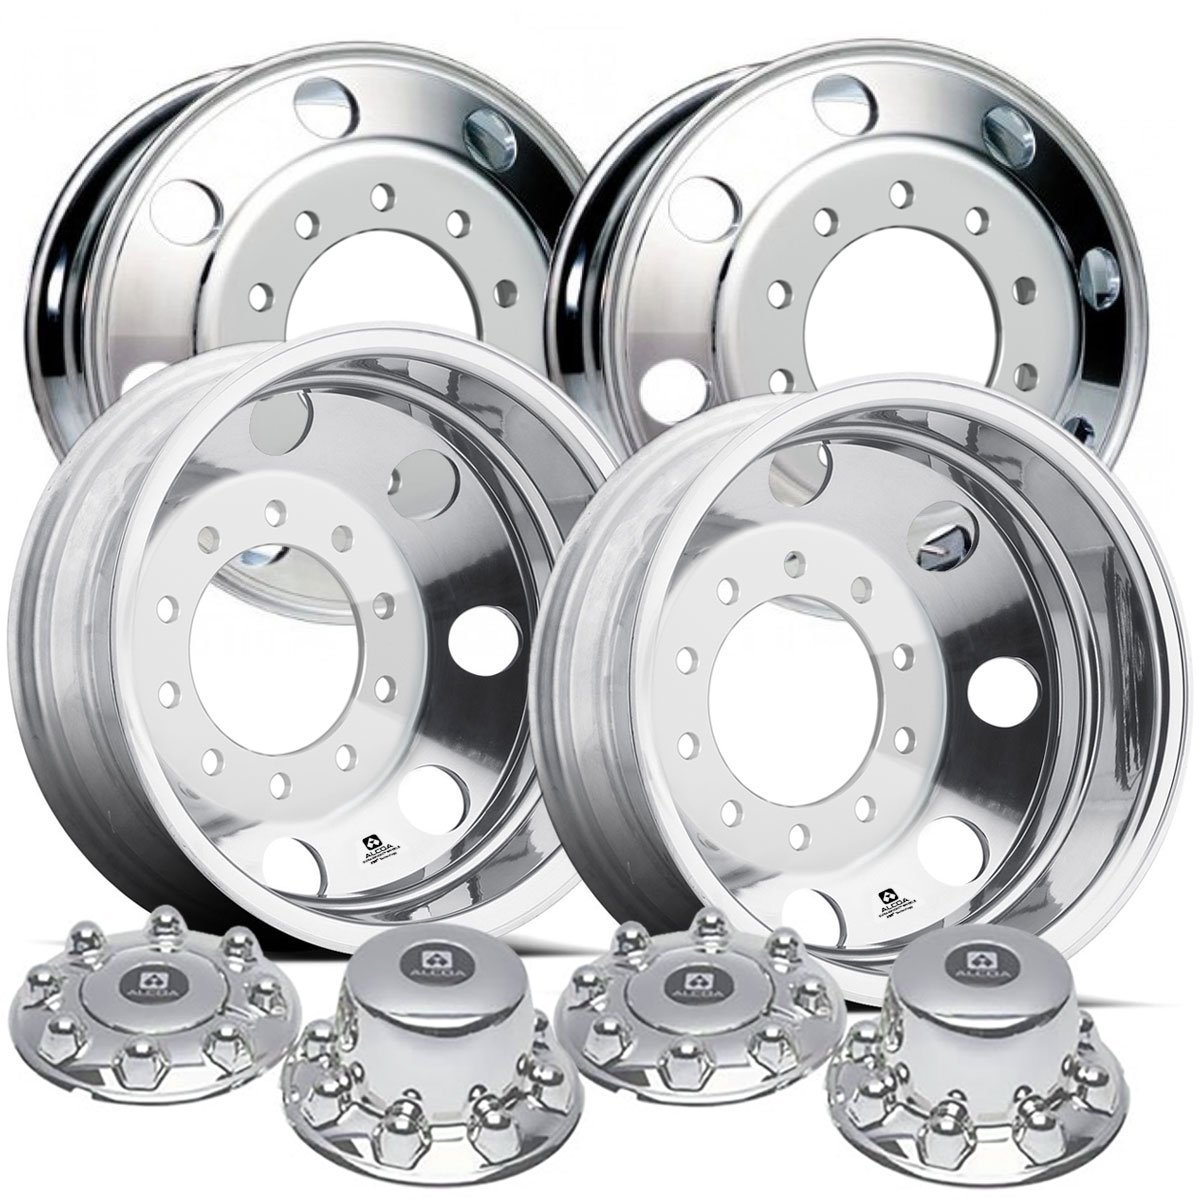 Alcoa 19.5'' Dura Bright Wheel Package for a Dodge Ram 4500 & 5500 Polished (2005 - current)